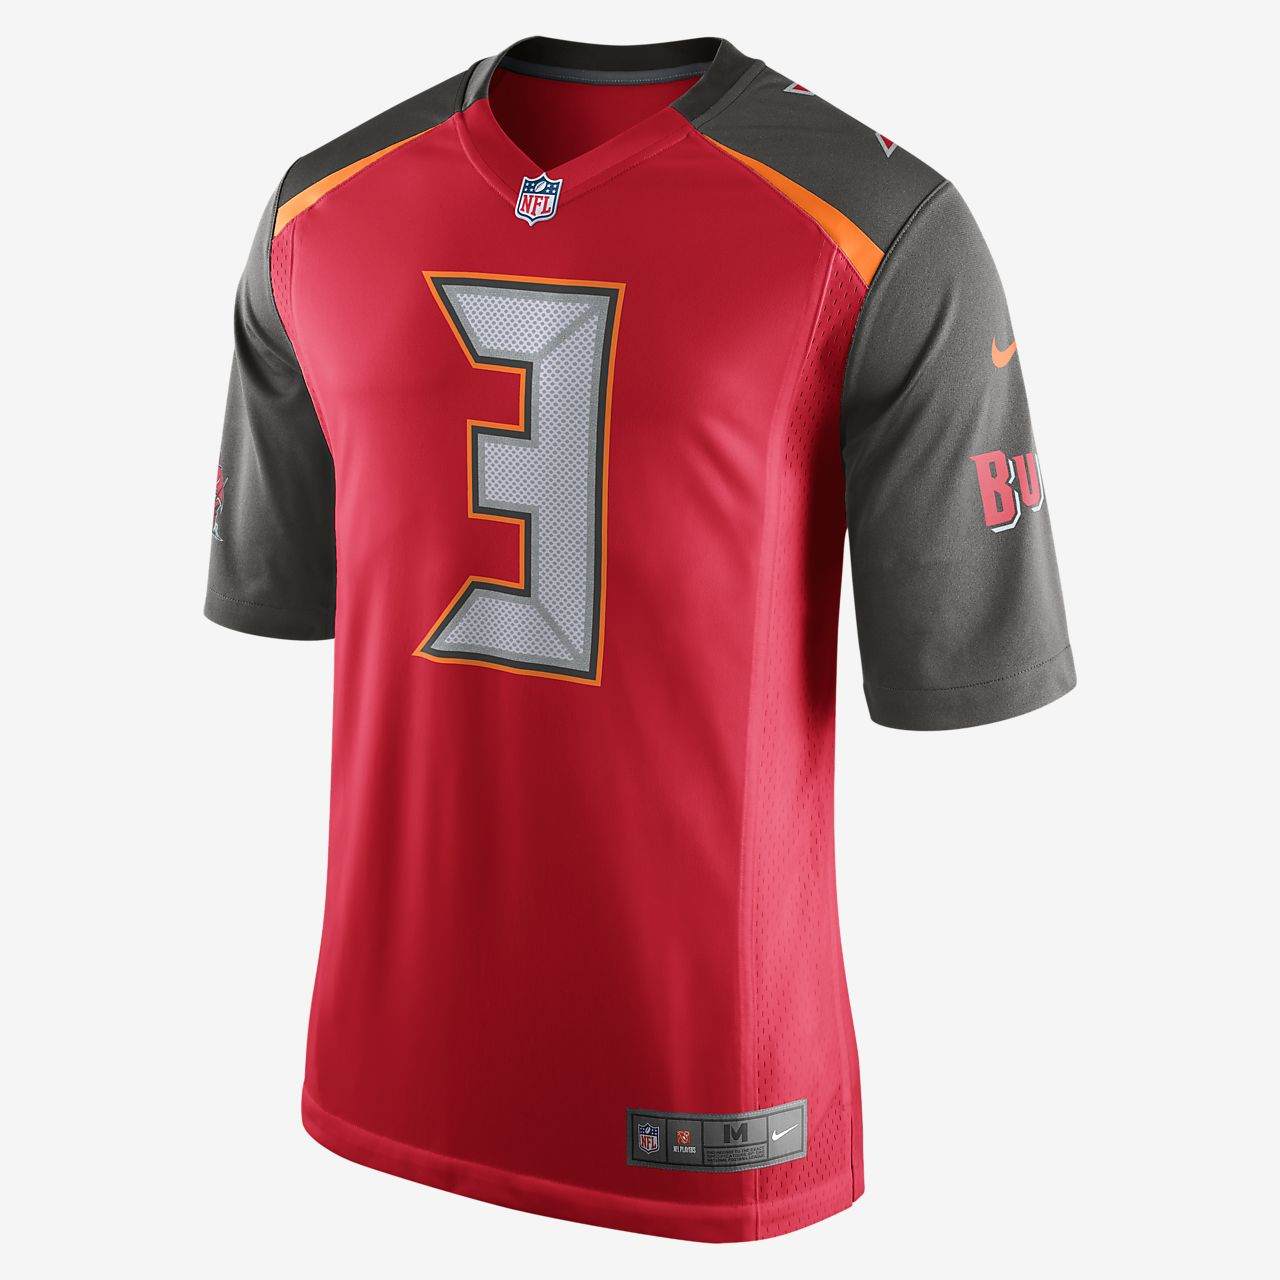 1bf2d4a780f6 ... NFL Tampa Bay Buccaneers (Jameis Winston) Men s Football Home Game  Jersey